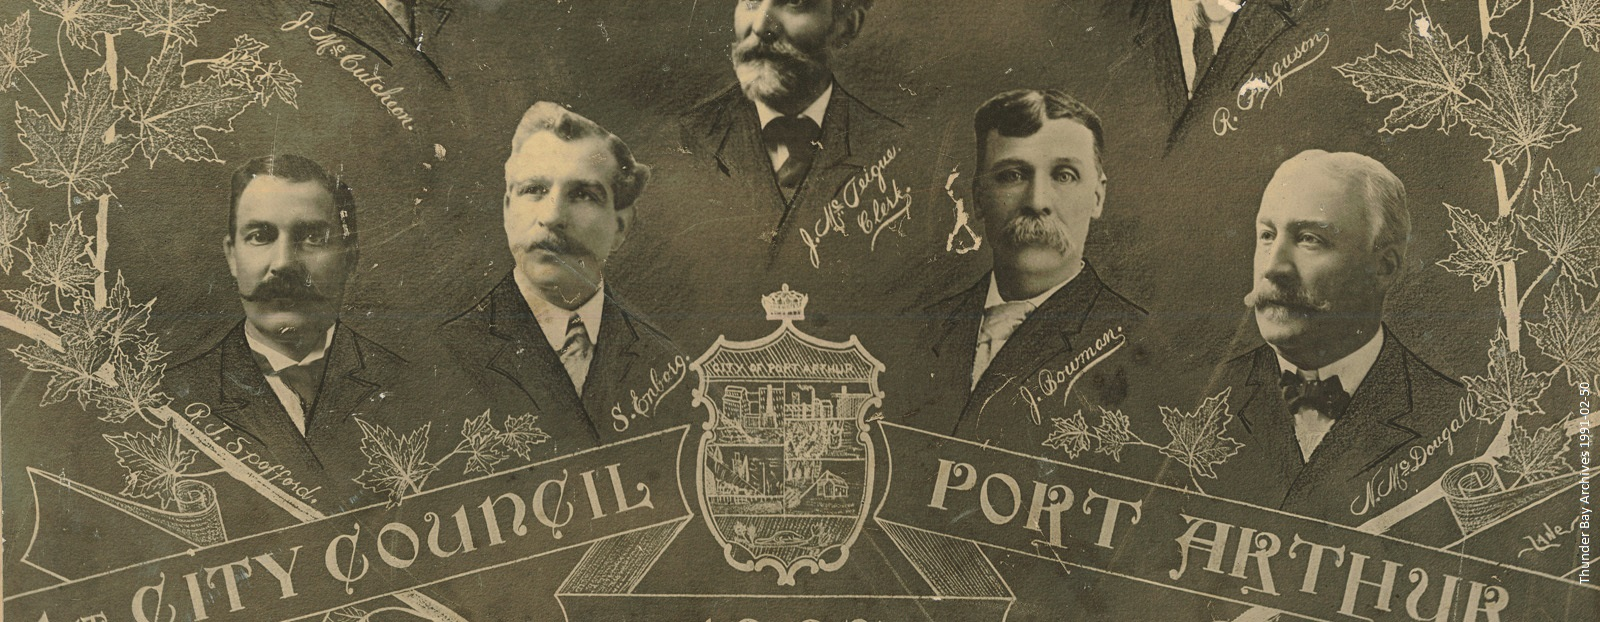 A group portrait of past Port Arthur Mayor and Councillors overlaid with the city crest